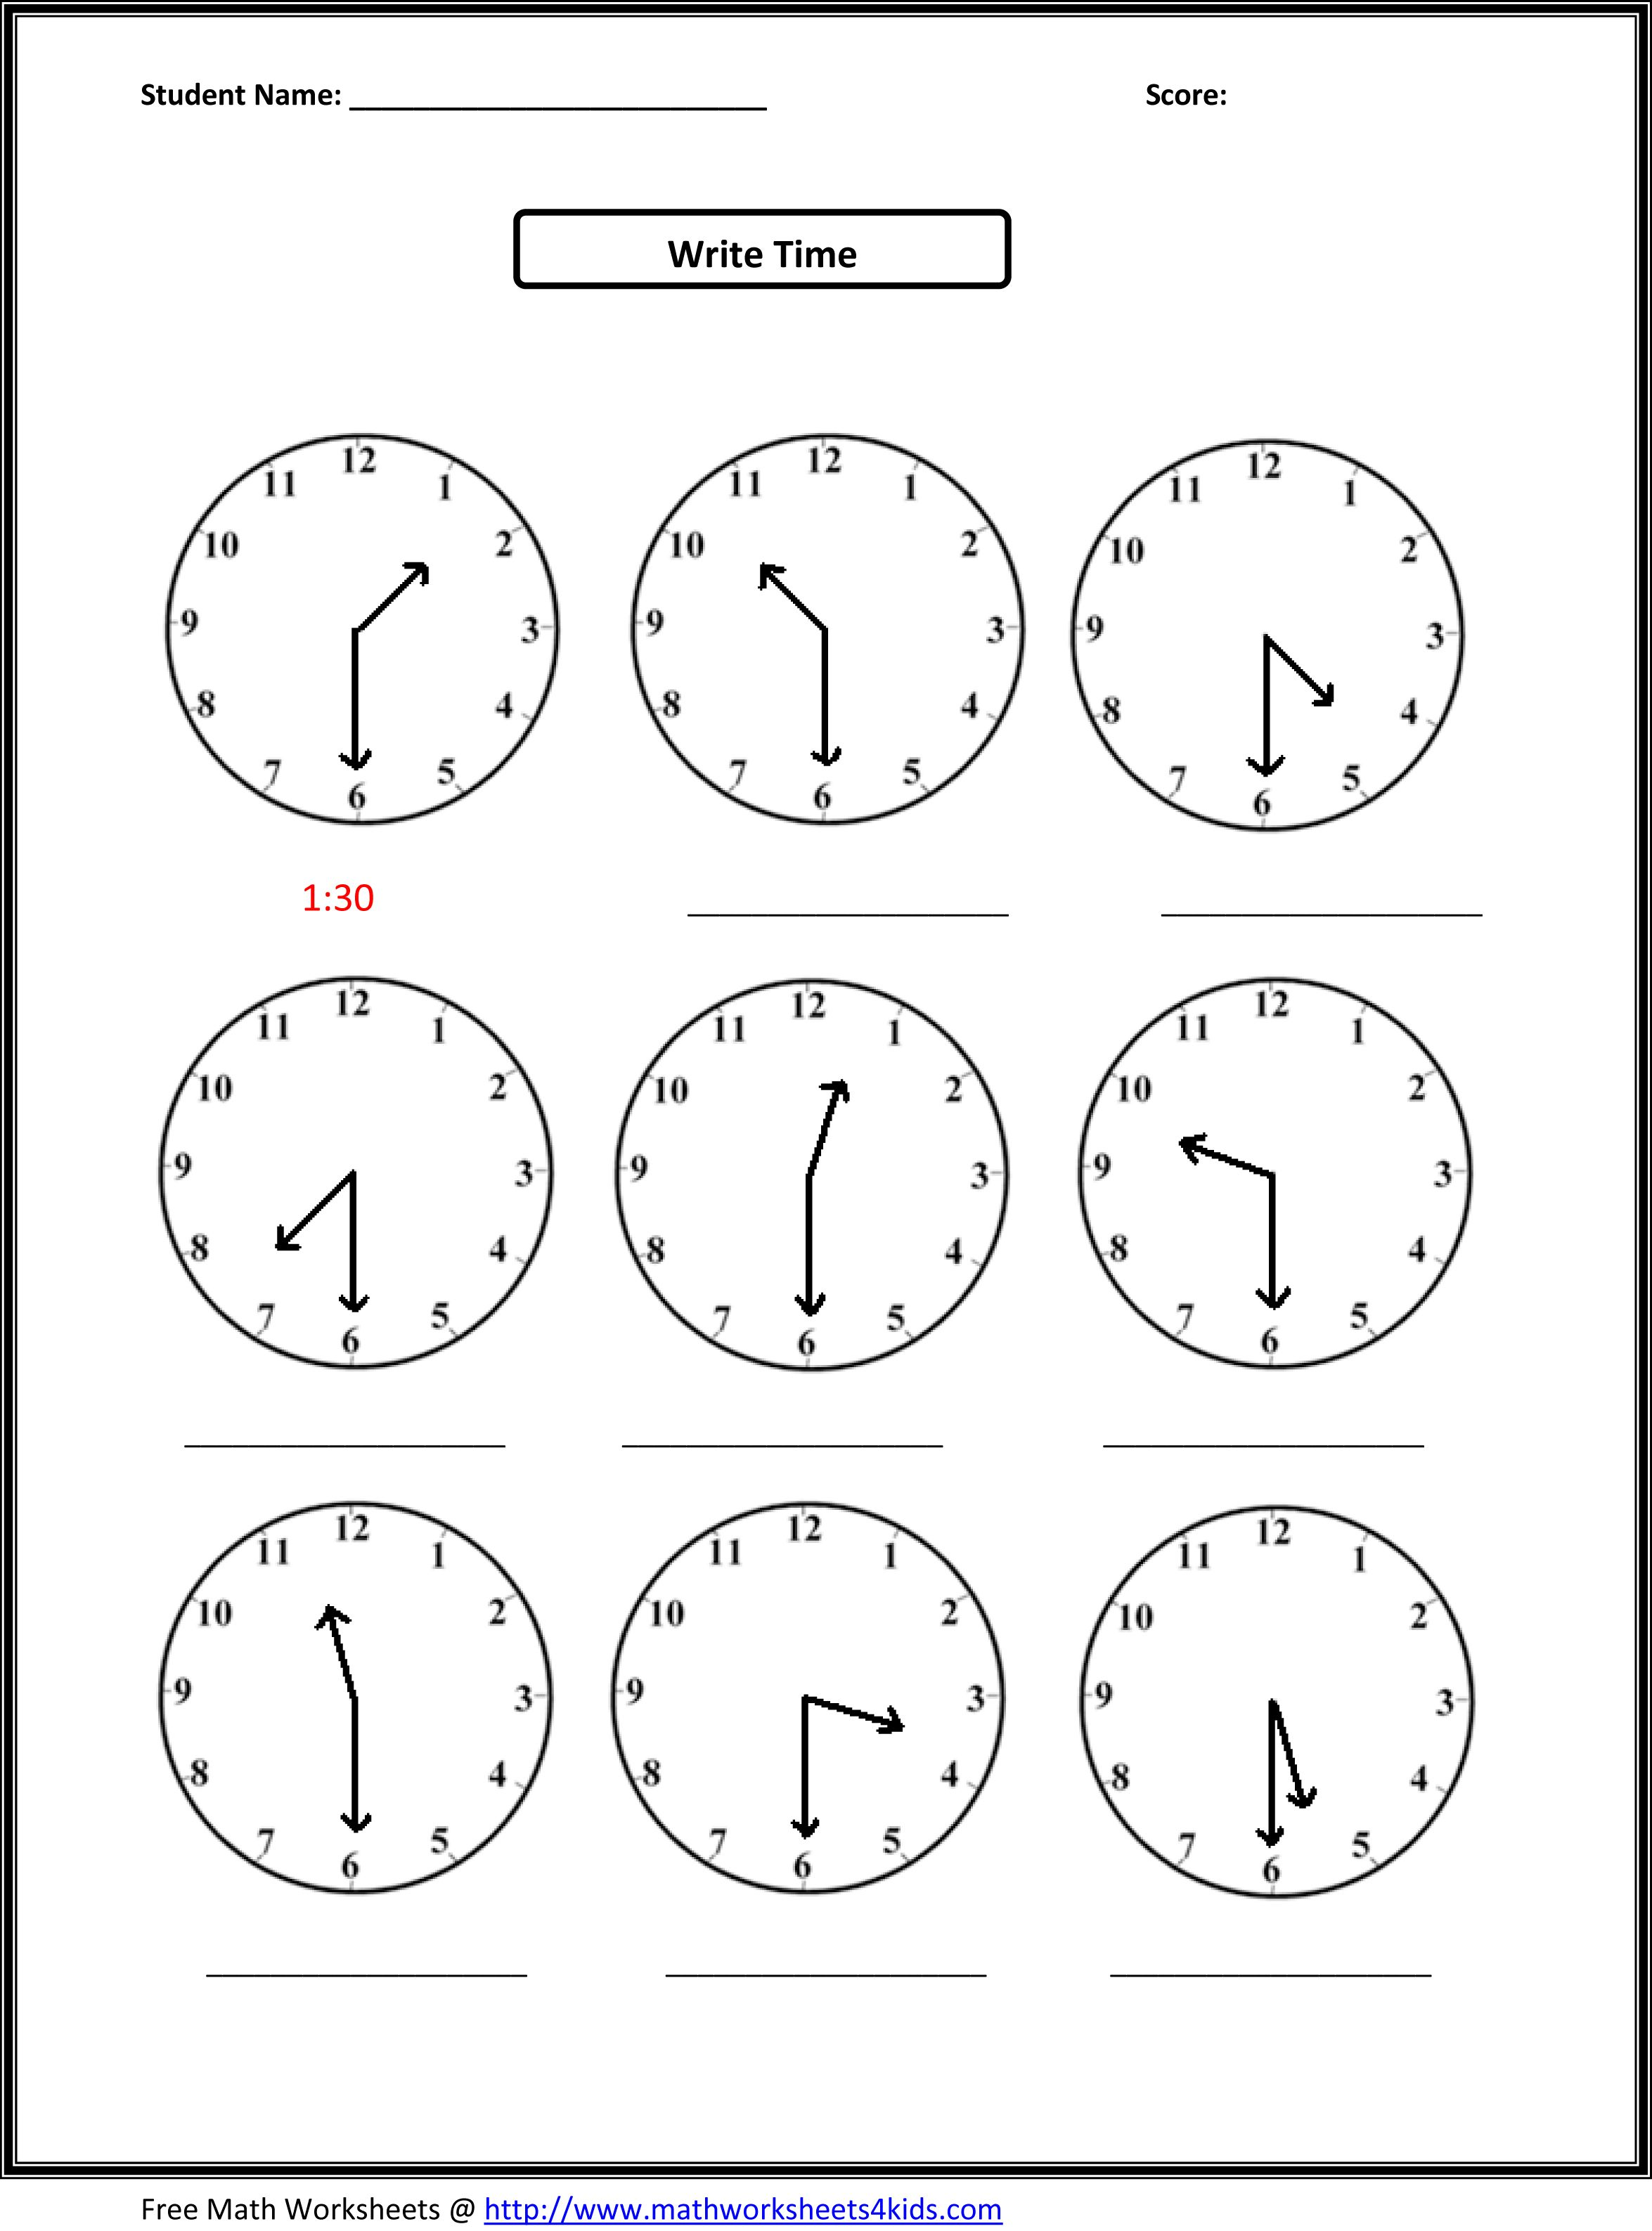 Weirdmailus  Terrific Worksheet On Time For Grade   Reocurent With Licious Free Printable Telling Time Worksheets Nd Grade  Reocurent With Enchanting Percent Of A Quantity Worksheet Also Order Decimals Worksheet In Addition Science Fair Worksheet And Contraction Worksheets Second Grade As Well As Baby Shower Games Printable Worksheets Free Additionally See Sight Word Worksheet From Reocurentcom With Weirdmailus  Licious Worksheet On Time For Grade   Reocurent With Enchanting Free Printable Telling Time Worksheets Nd Grade  Reocurent And Terrific Percent Of A Quantity Worksheet Also Order Decimals Worksheet In Addition Science Fair Worksheet From Reocurentcom